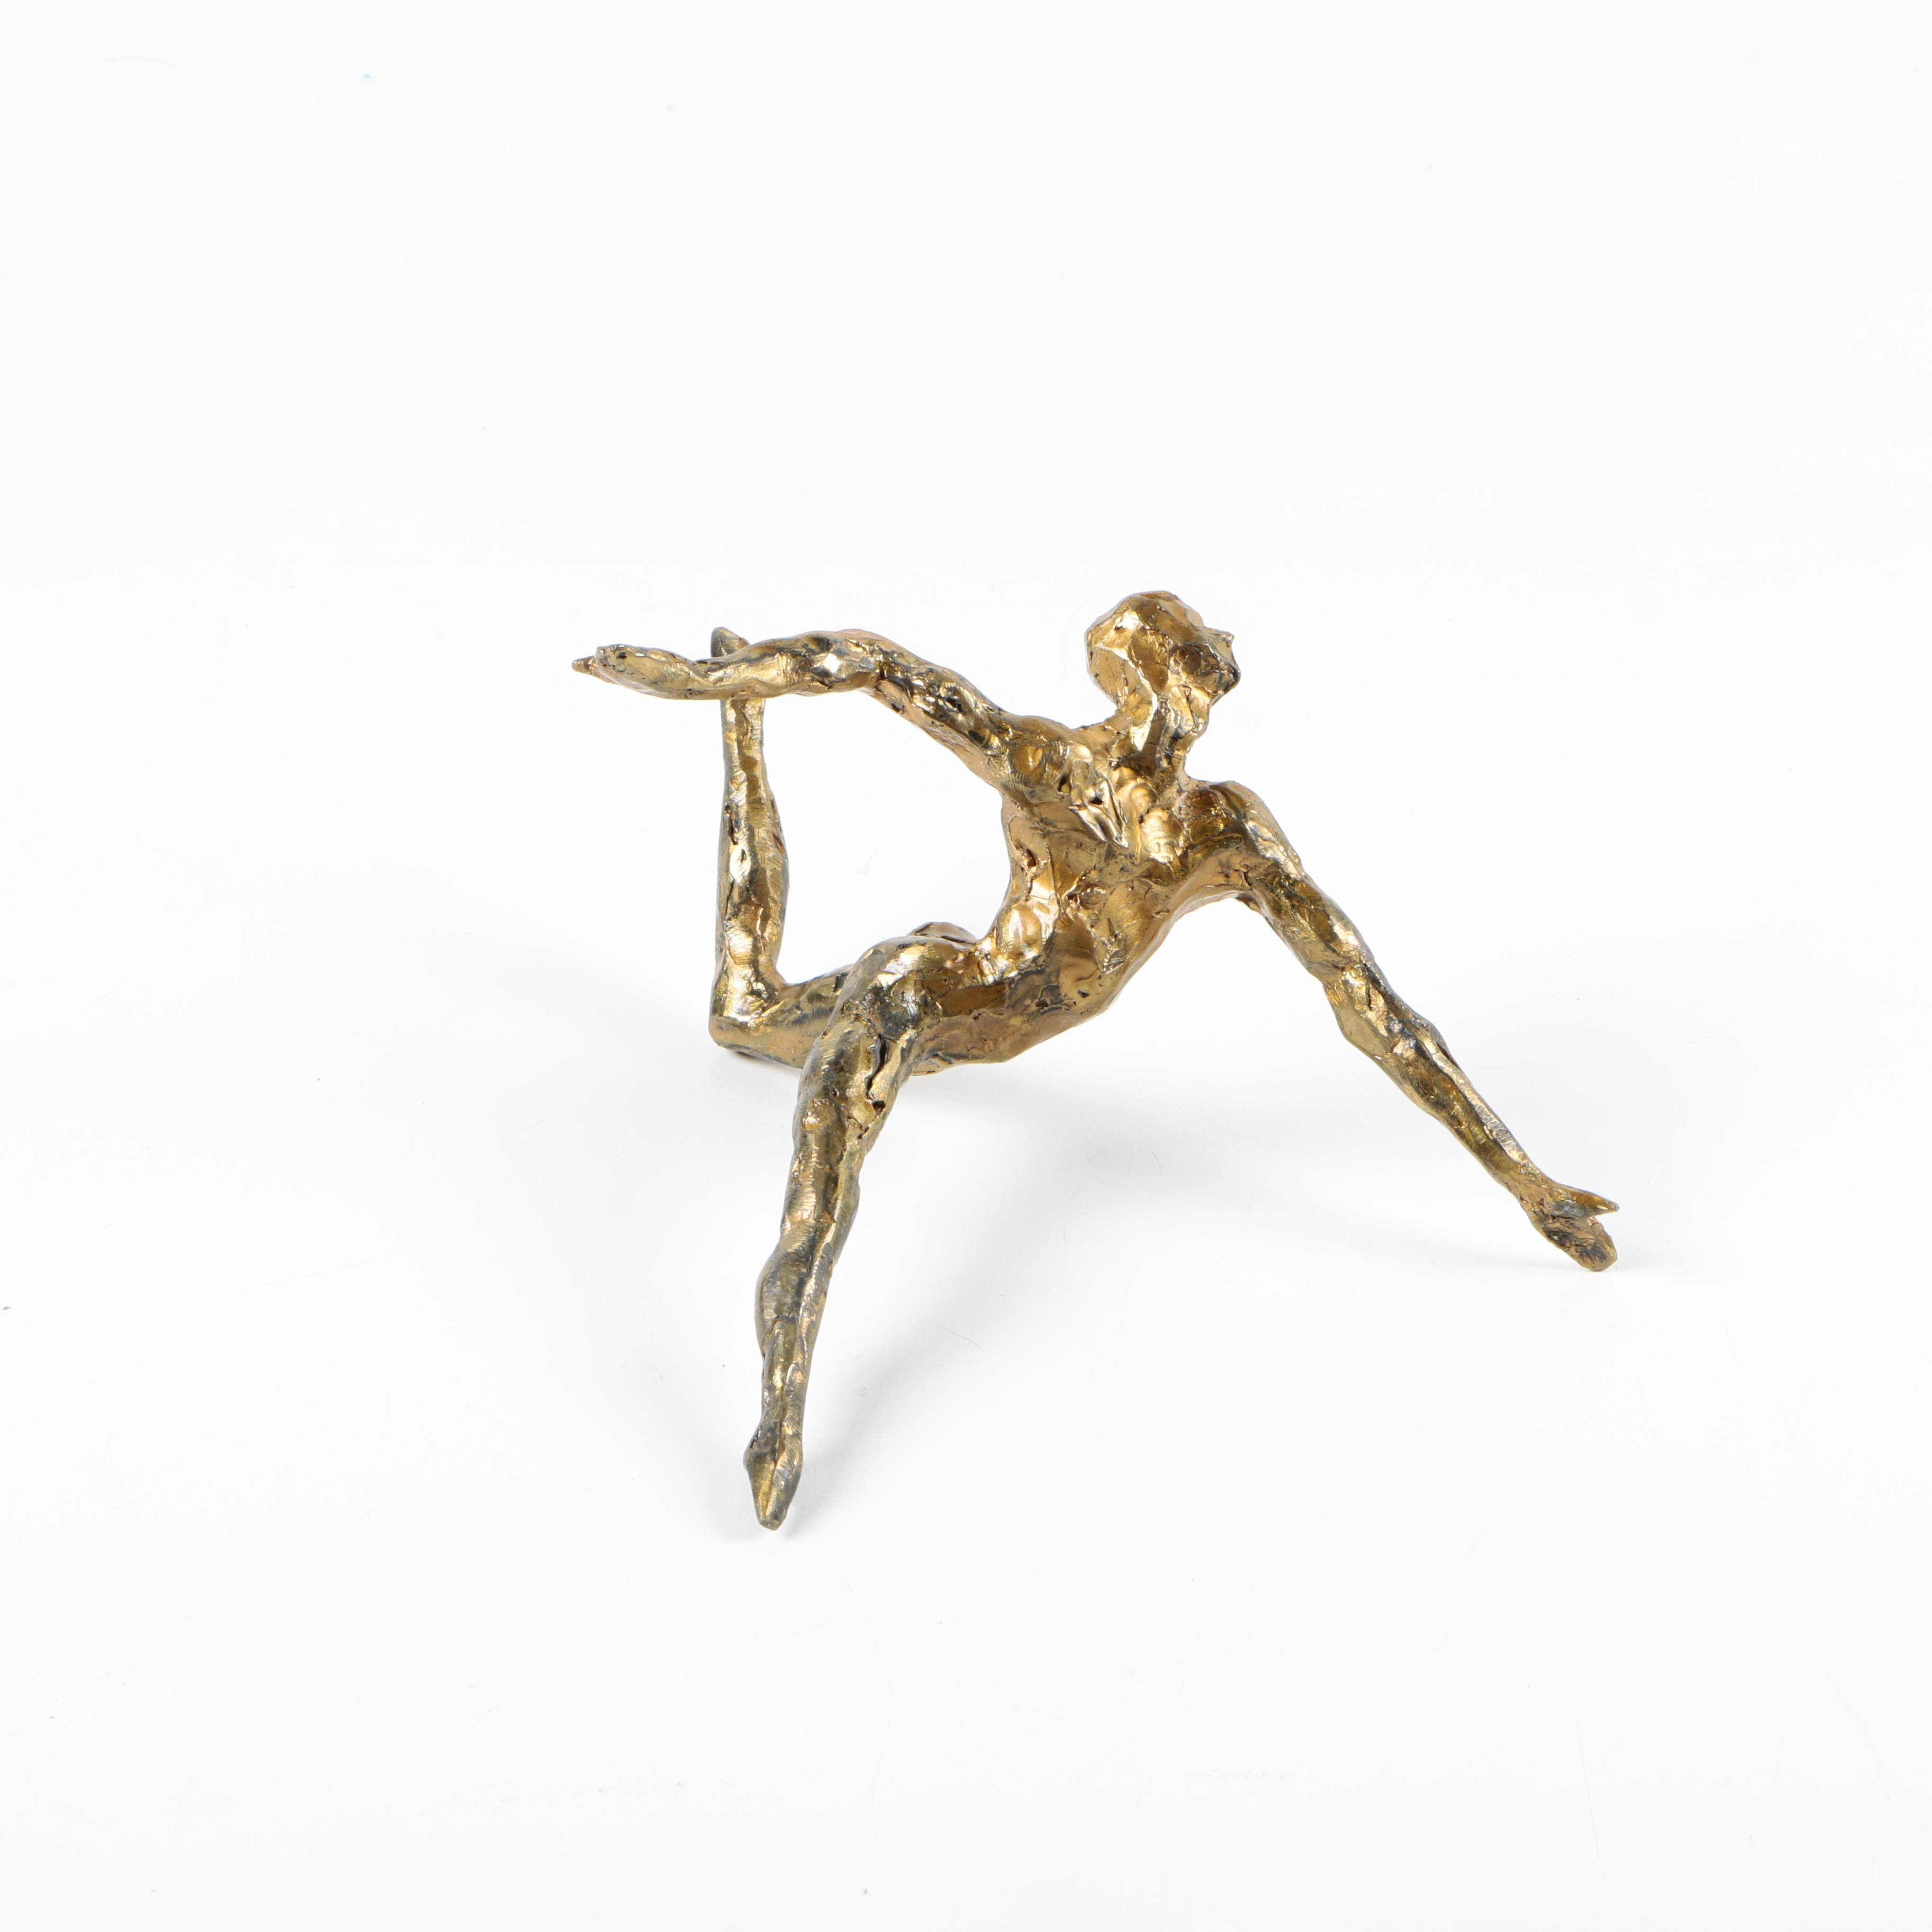 Figural Copper Sculpture by James Maher